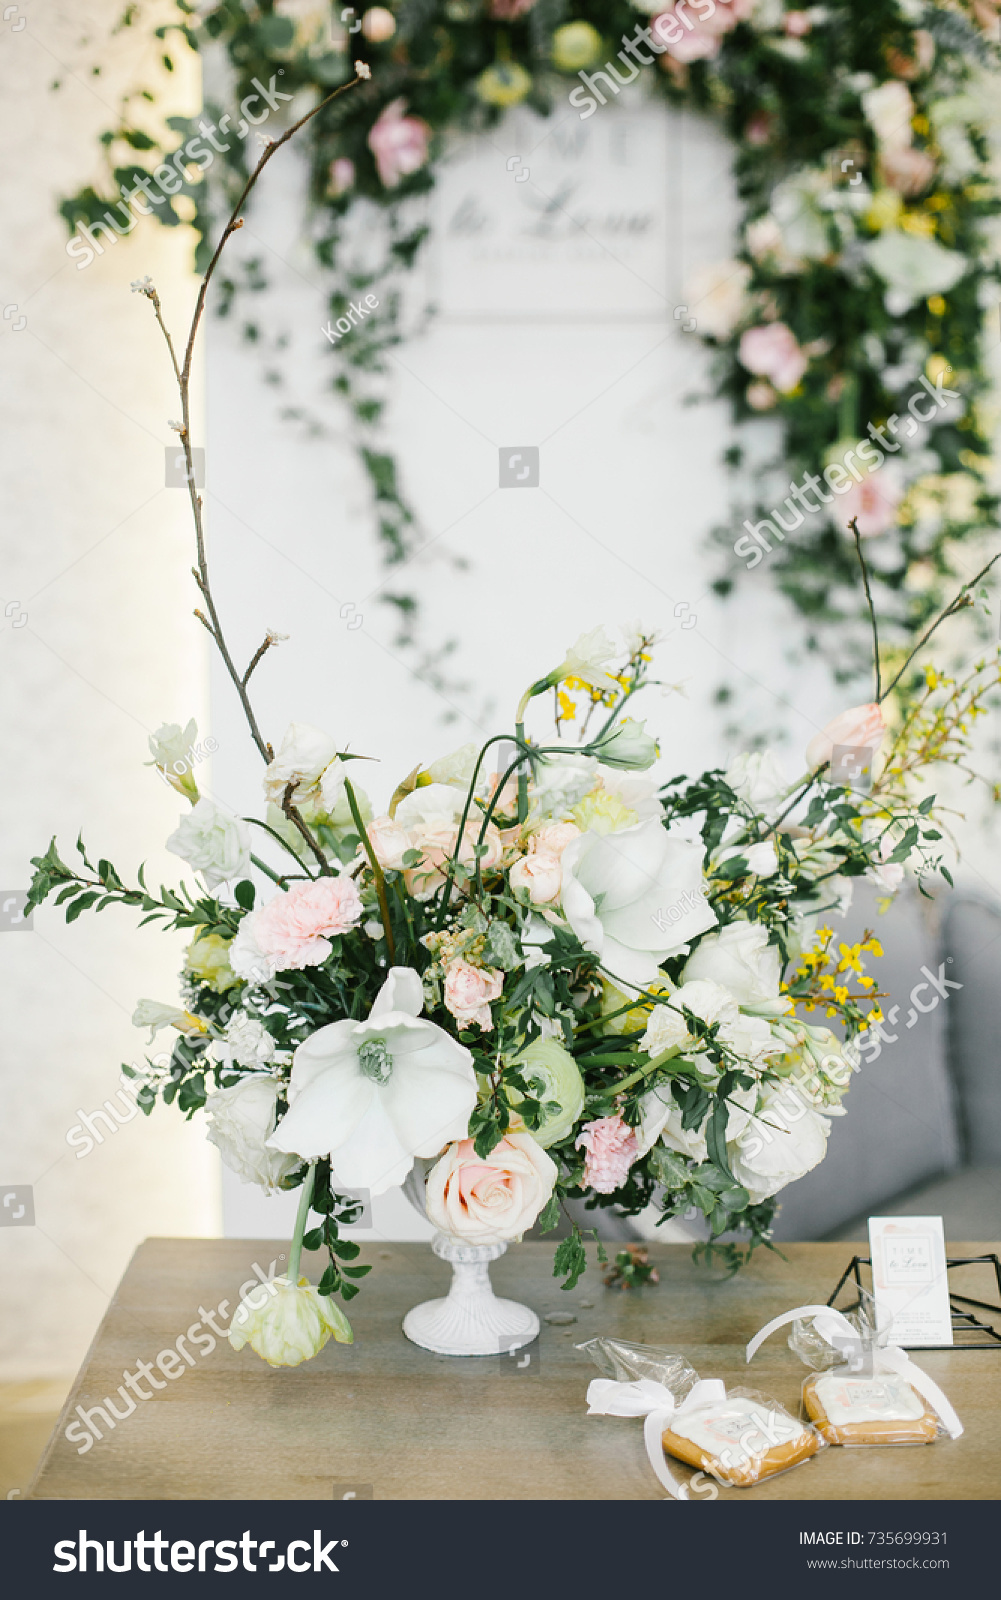 Wedding Table Centerpieces White Floral Composition Stock Photo ...